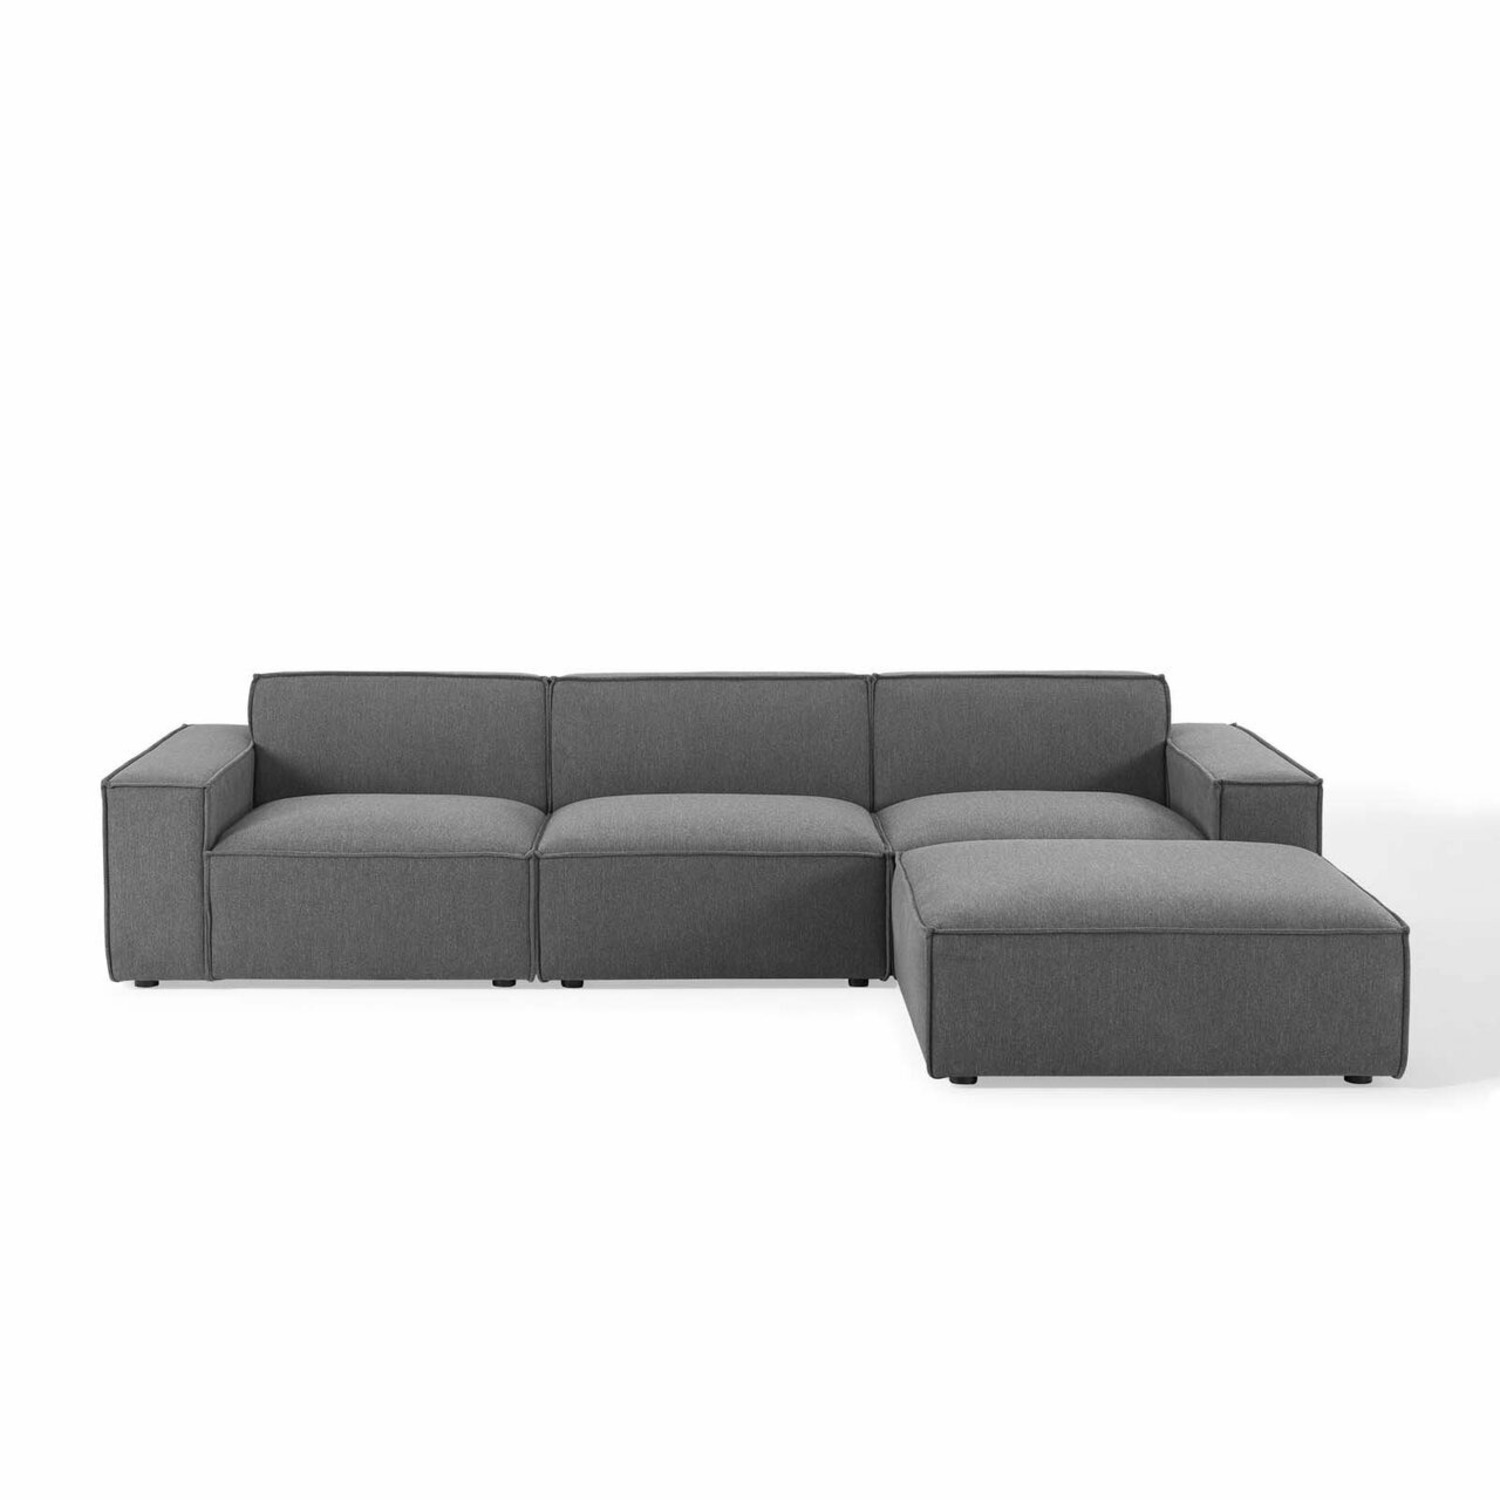 4-Piece Sectional Sofa In Charcoal Fabric Finish - image-1